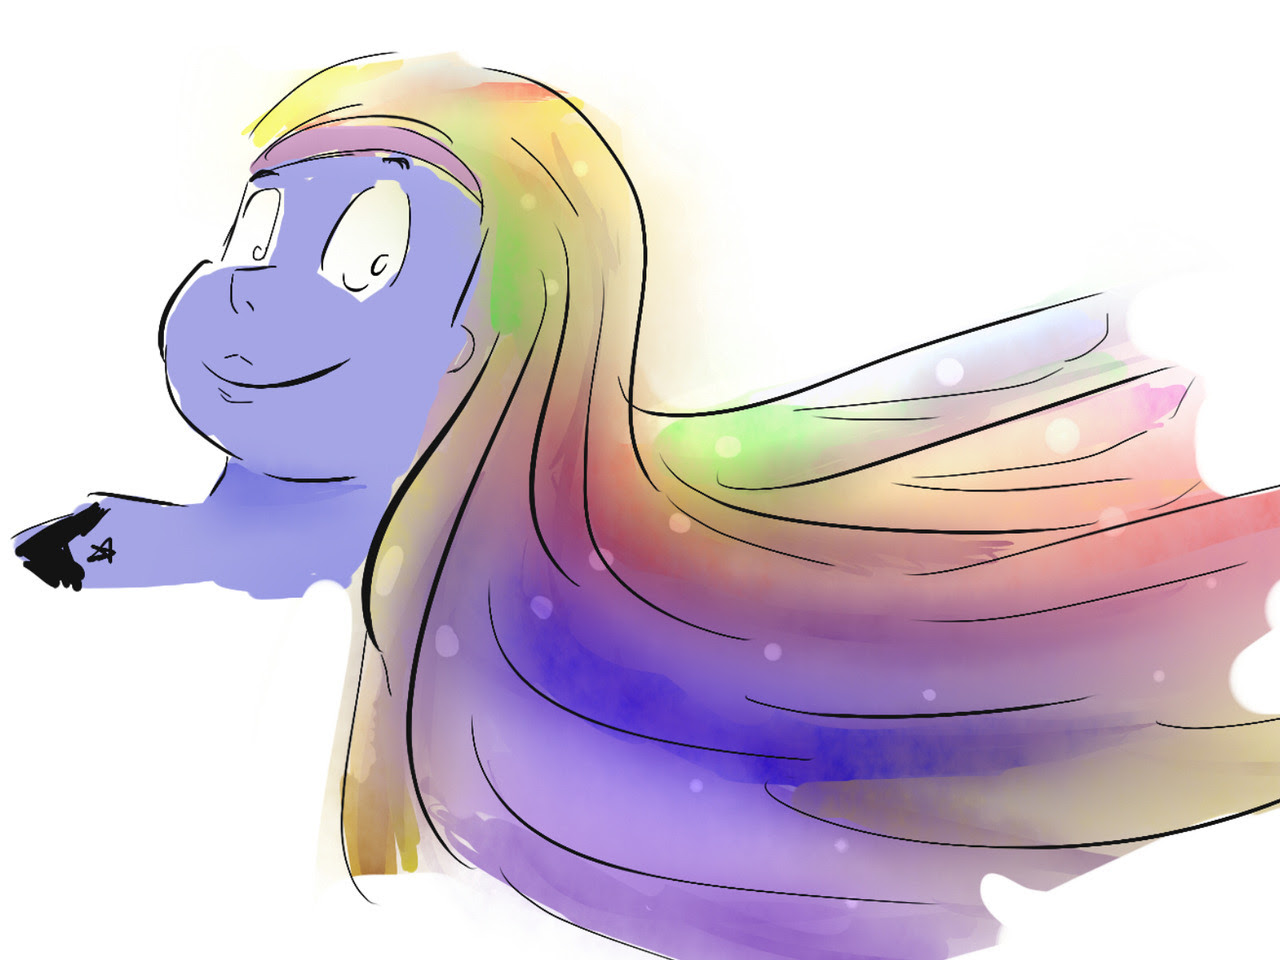 Bismuth from memory (I can't believe I've never drawn her!)